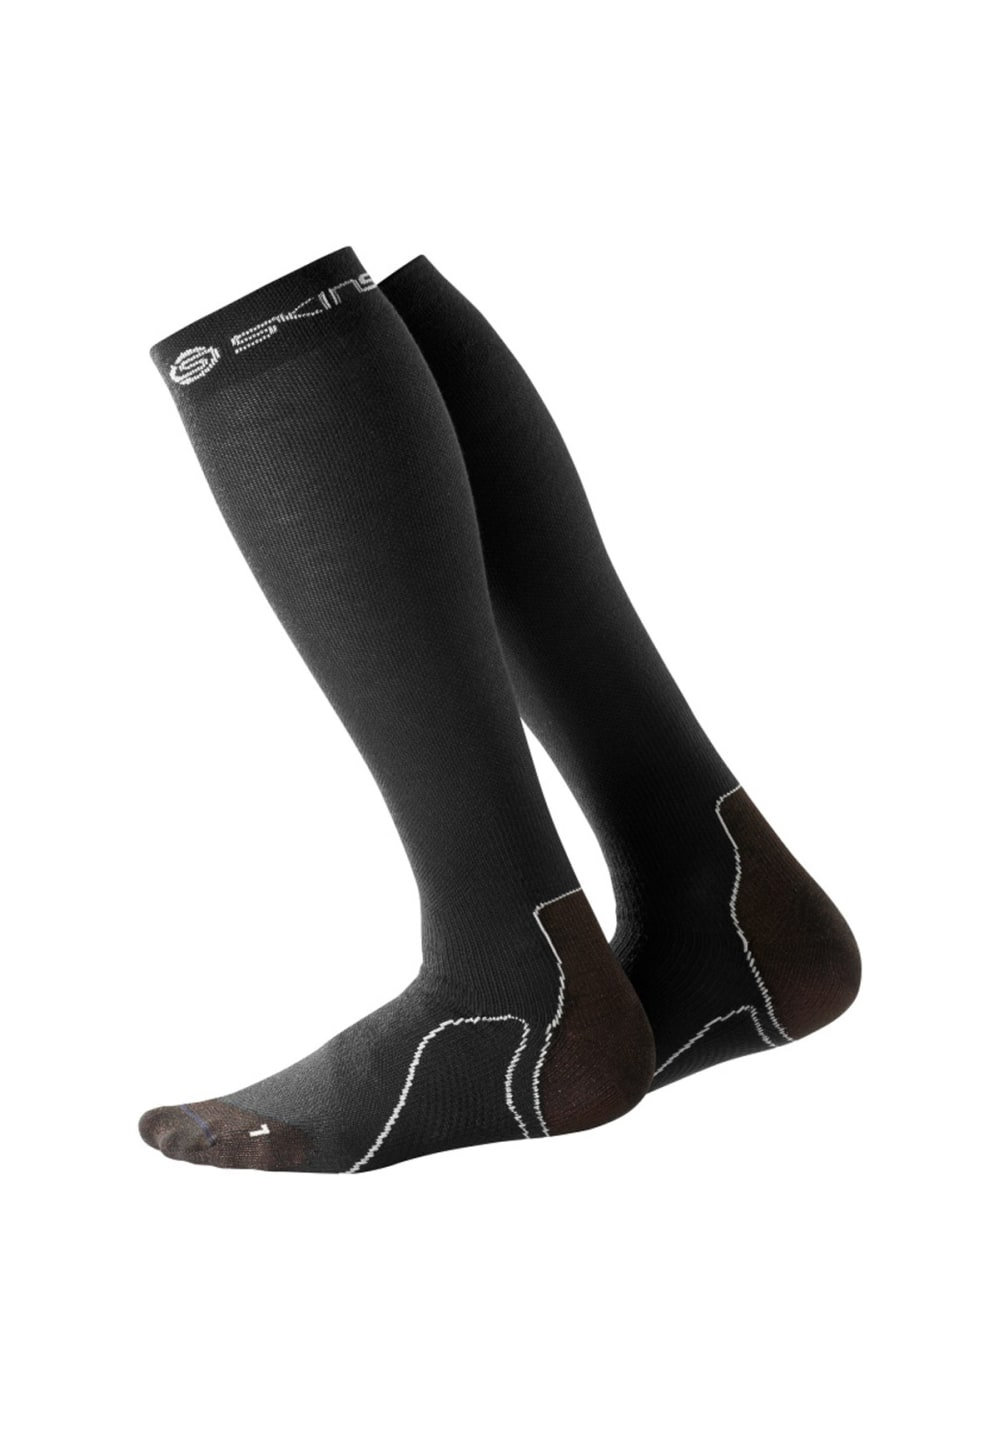 reputable site abb82 6a3b0 Skins Essentials Comp Socks Recovery Hommes Article compression